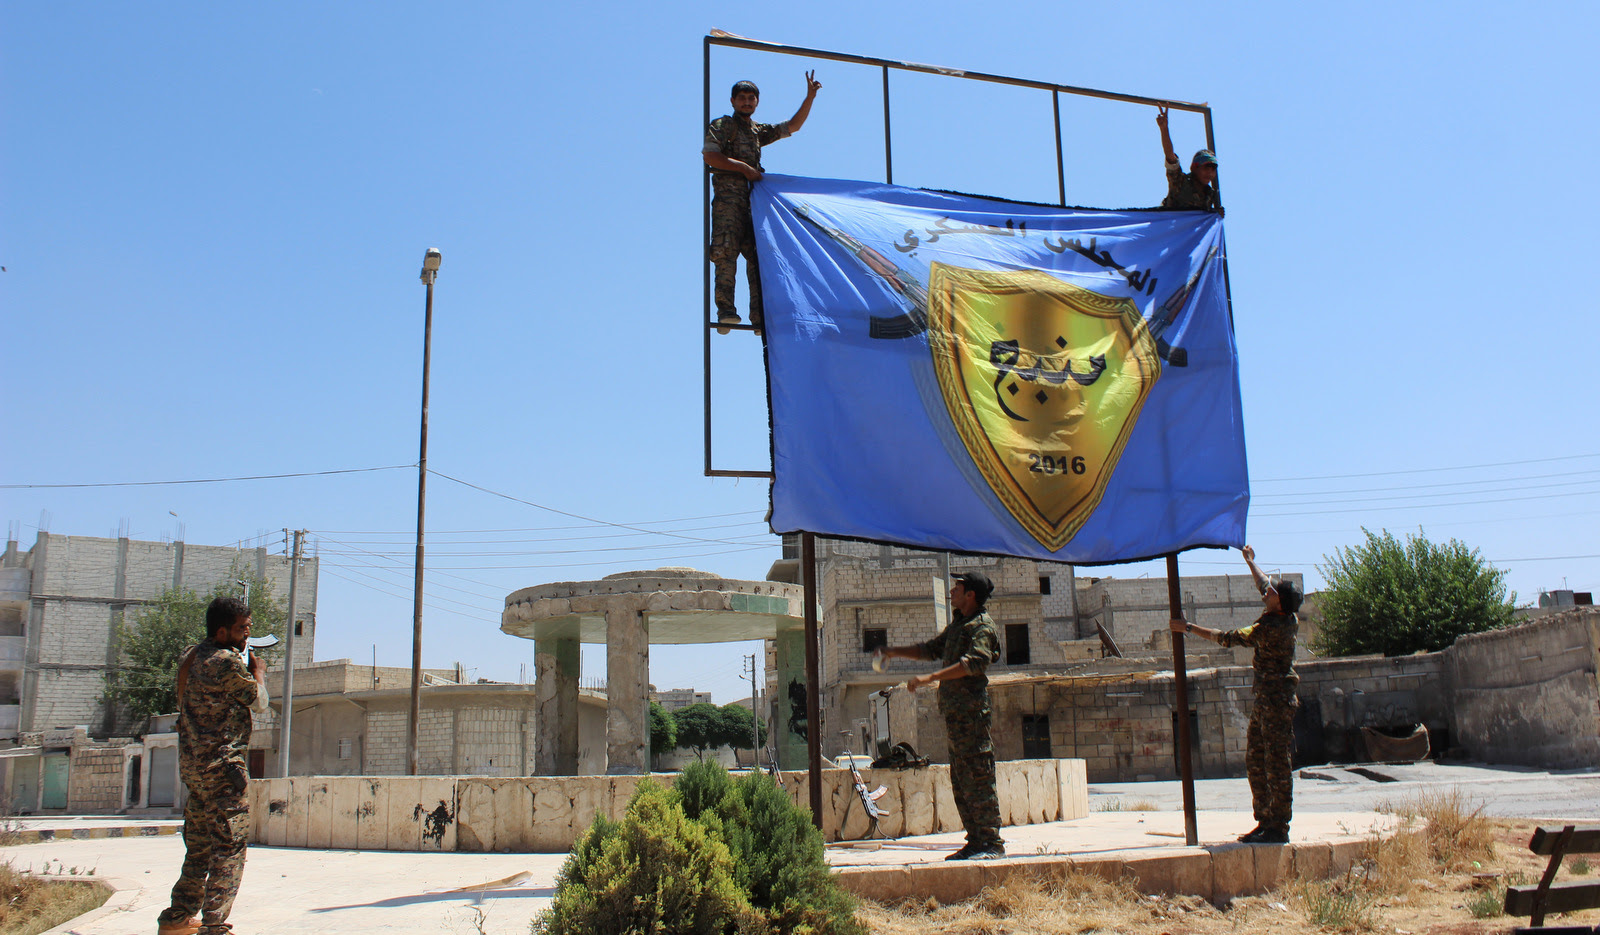 U.S.-backed, Kurdish-led Syria Democratic Forces raise their flag in the center of the town of Manbij after driving ISIS out of the area, in Aleppo province, Syria. (ANHA via AP)